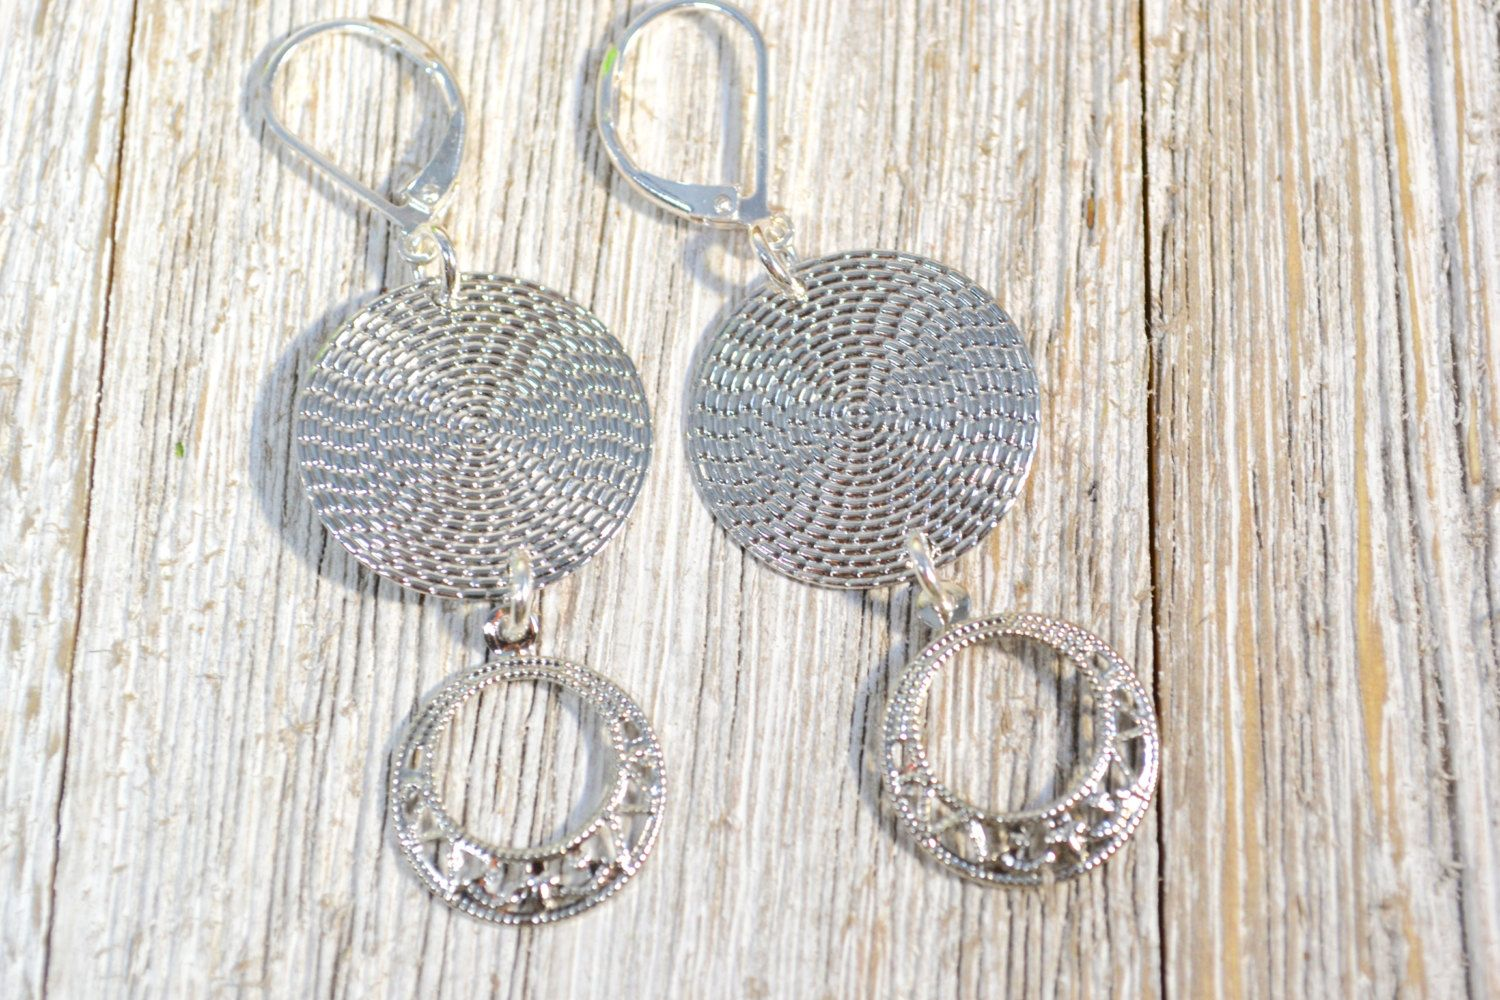 Textured Silver Coin Drop Earring, Silver Disc Drop Earrings, Modern Minimal Earrings, Small Disc Earring Christmas Gift for BFF- Girlfriend by ESBeadworks on Etsy